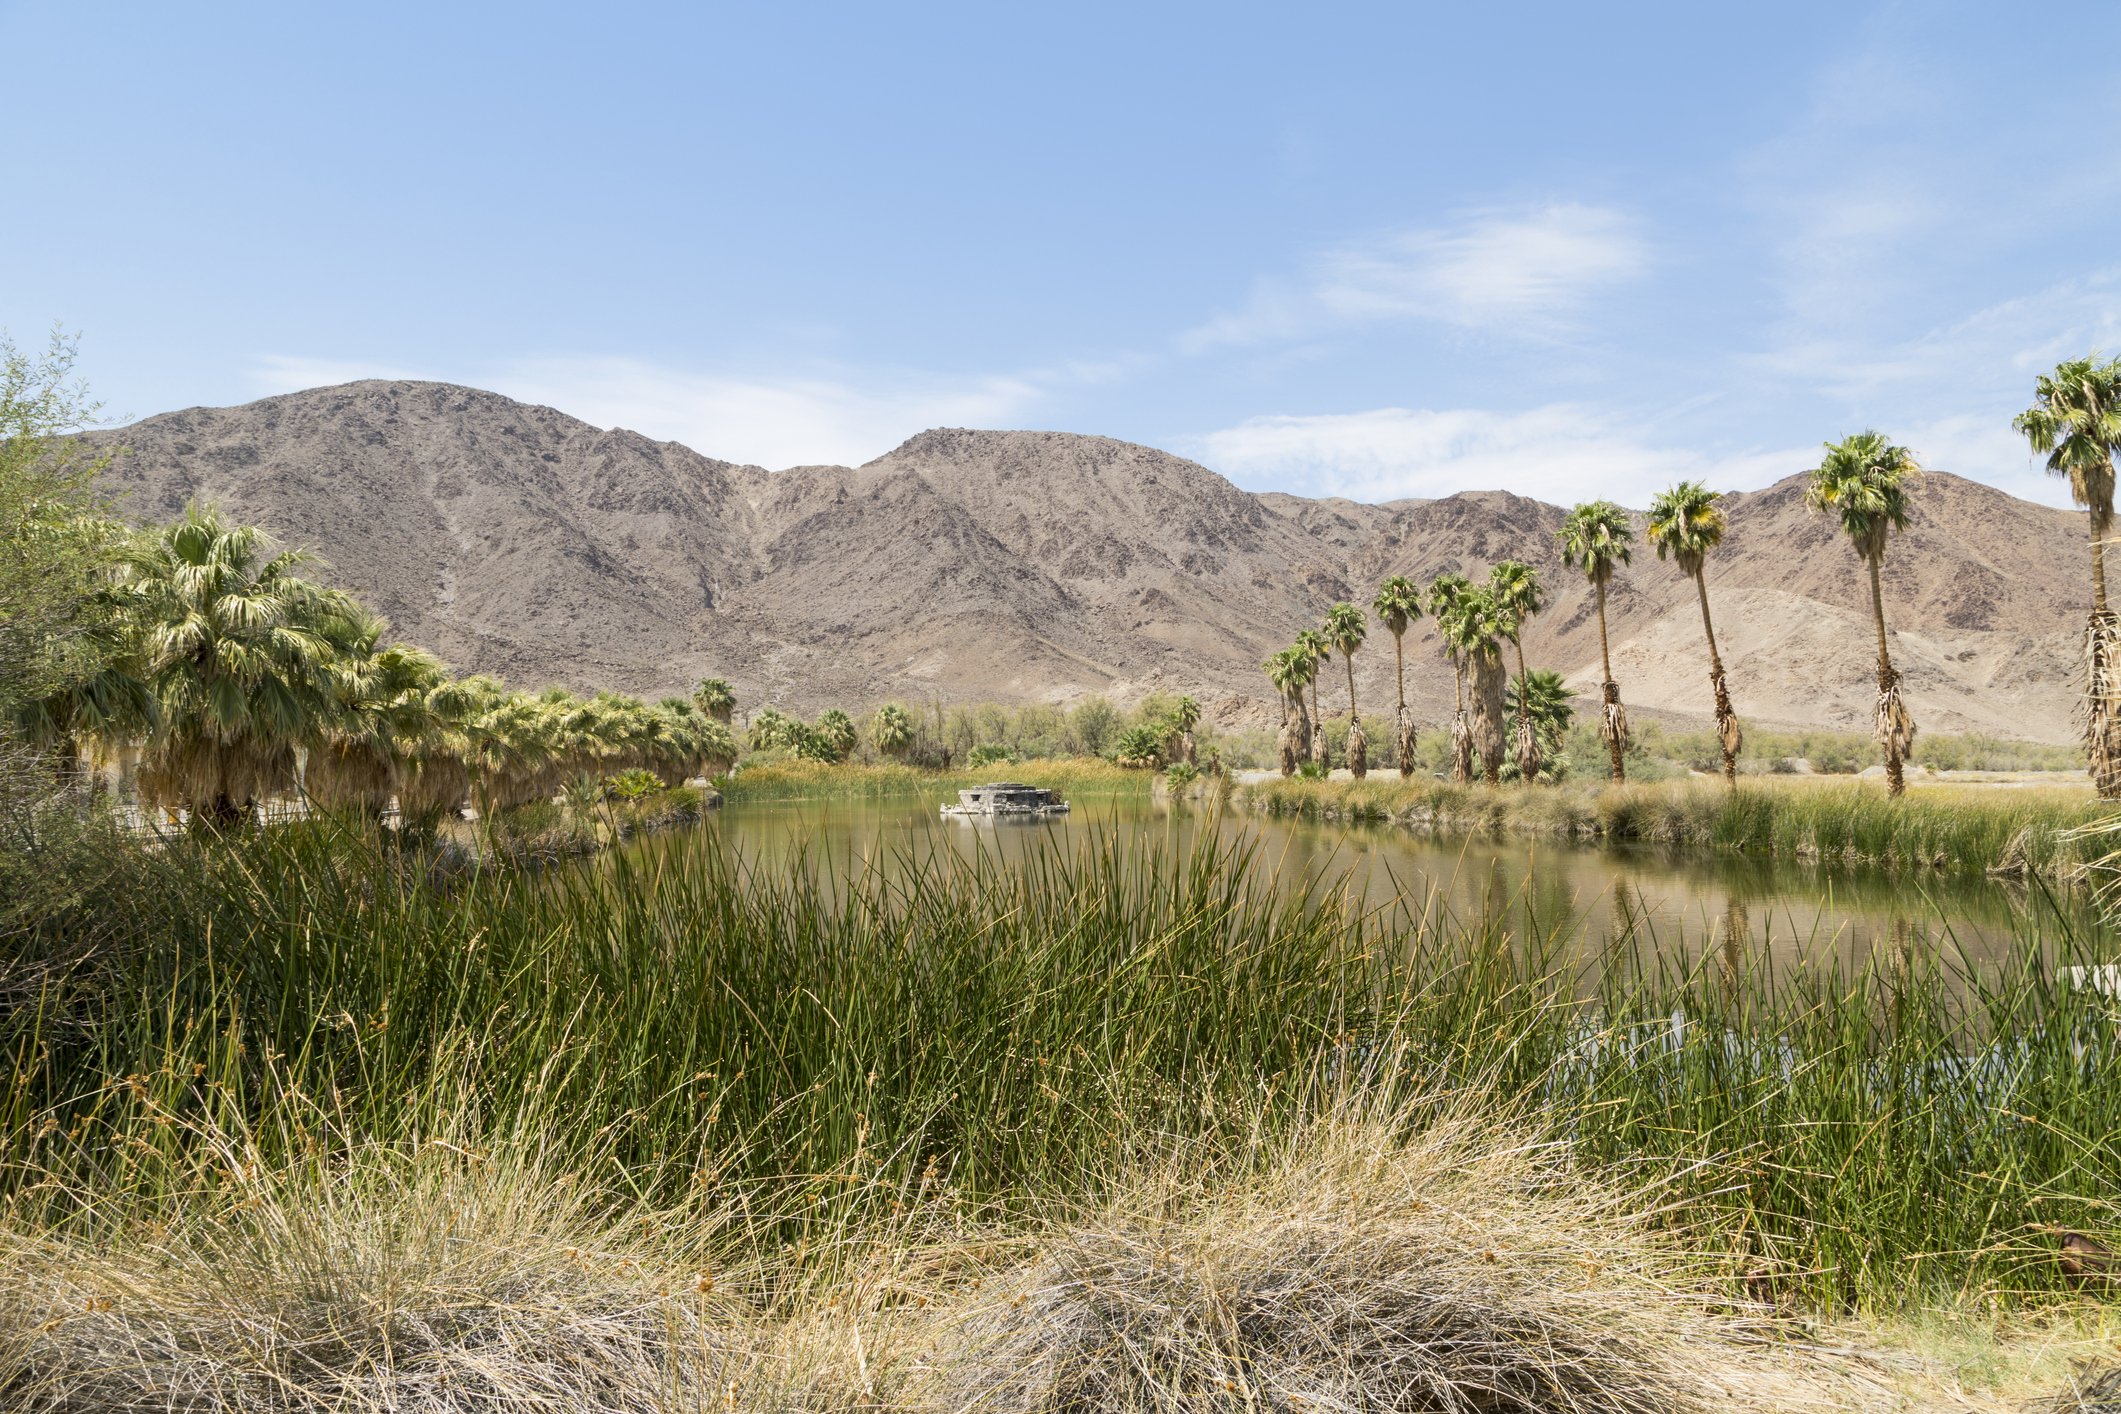 A lake in the desert at Zzyzx, formerly Soda Springs in California